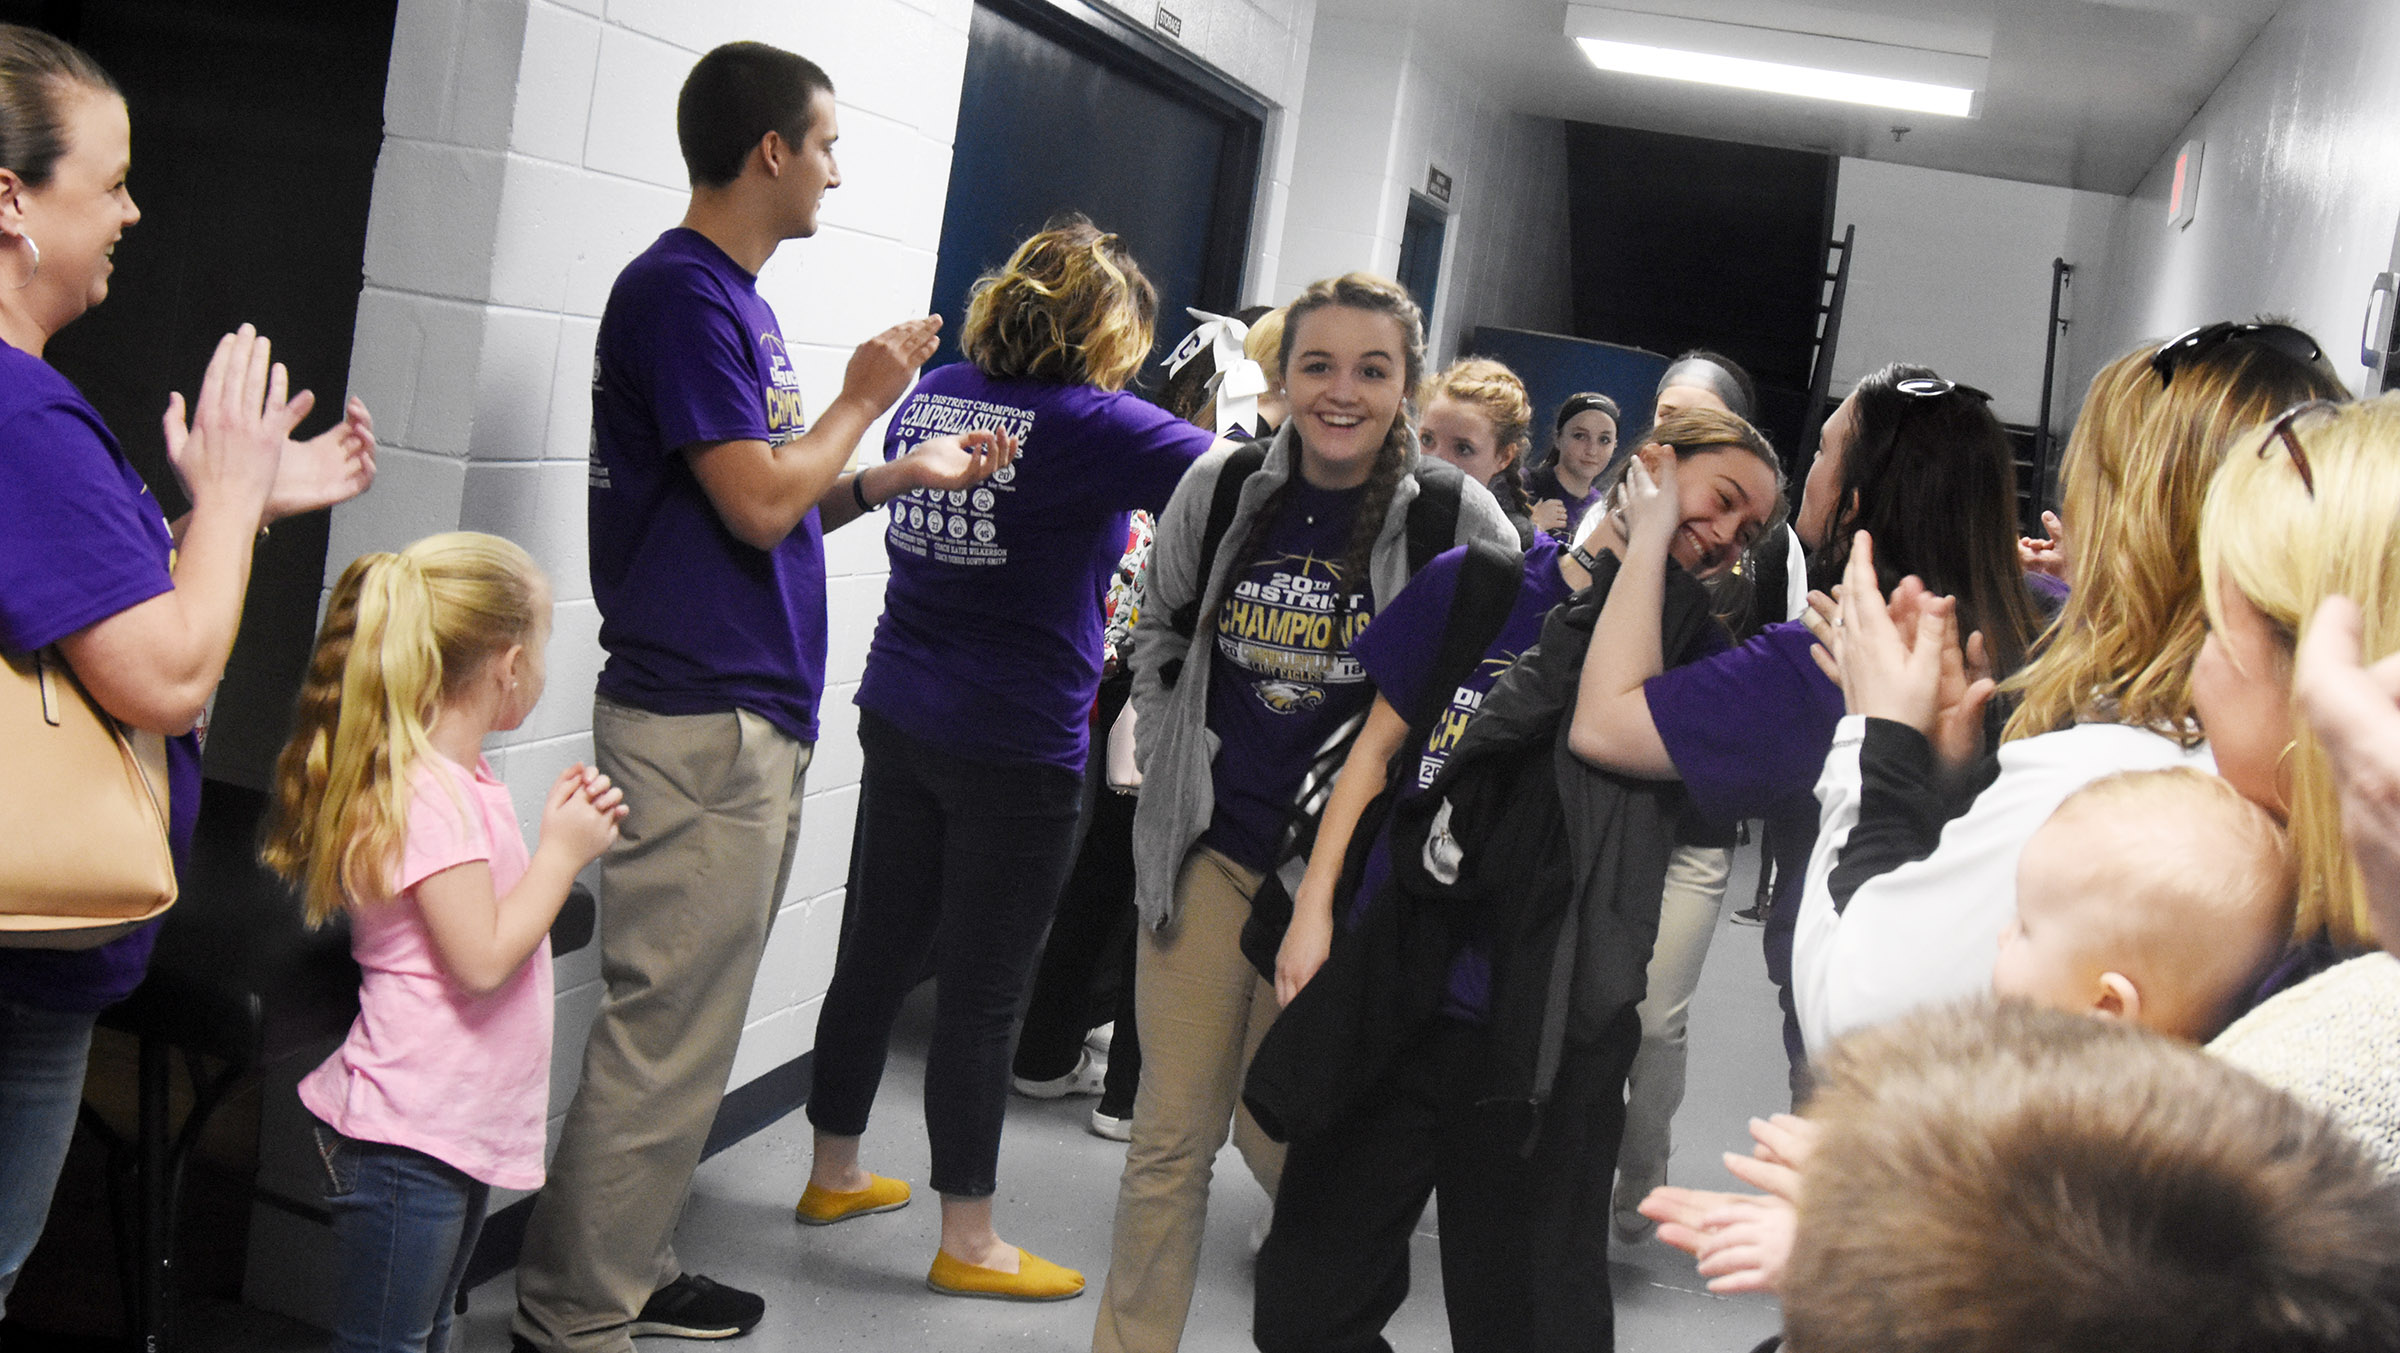 CHS freshman Kenzi Forbis, at left, and sophomore Bailey Thompson are congratulated as they walk out of the locker room.